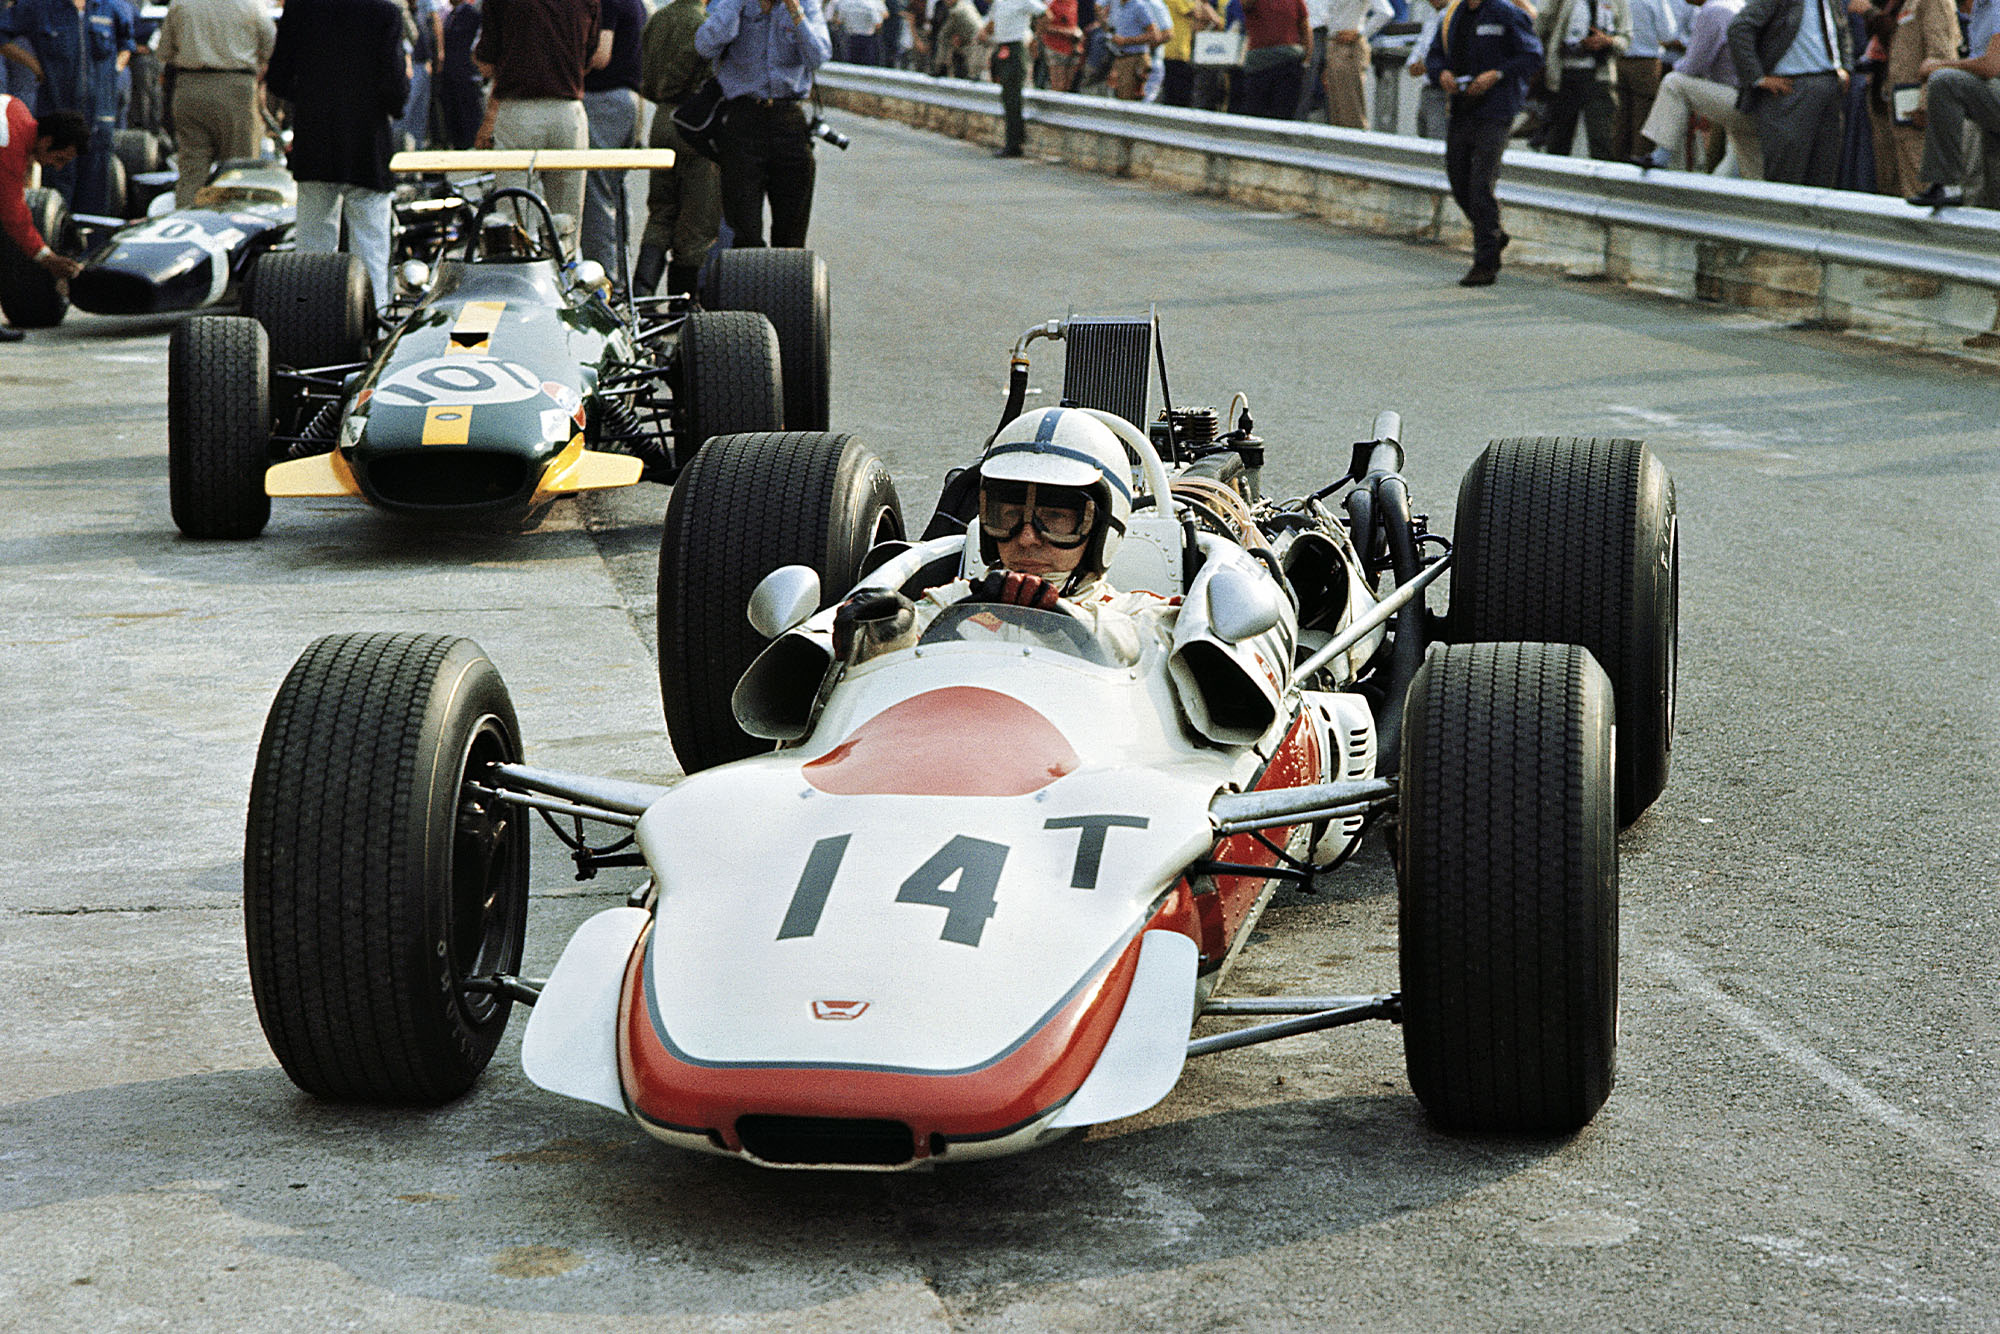 John Surtees, Honda RA301 in front of the Brabham BT26 Repco.